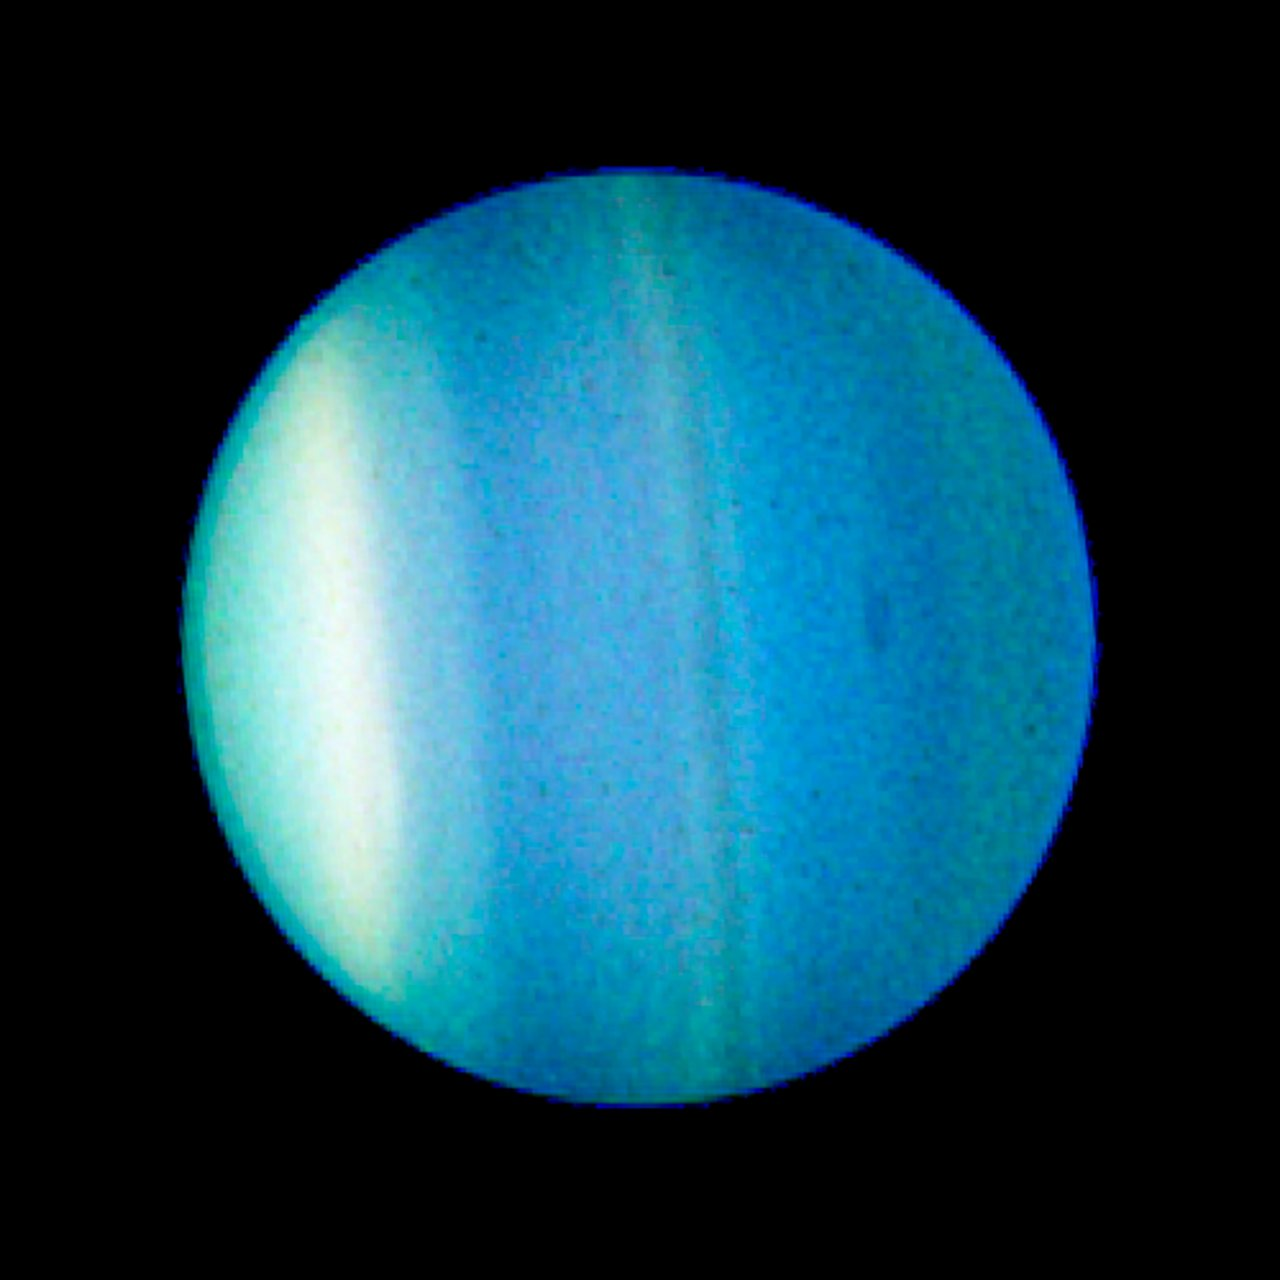 nasa photos of uranus - photo #1